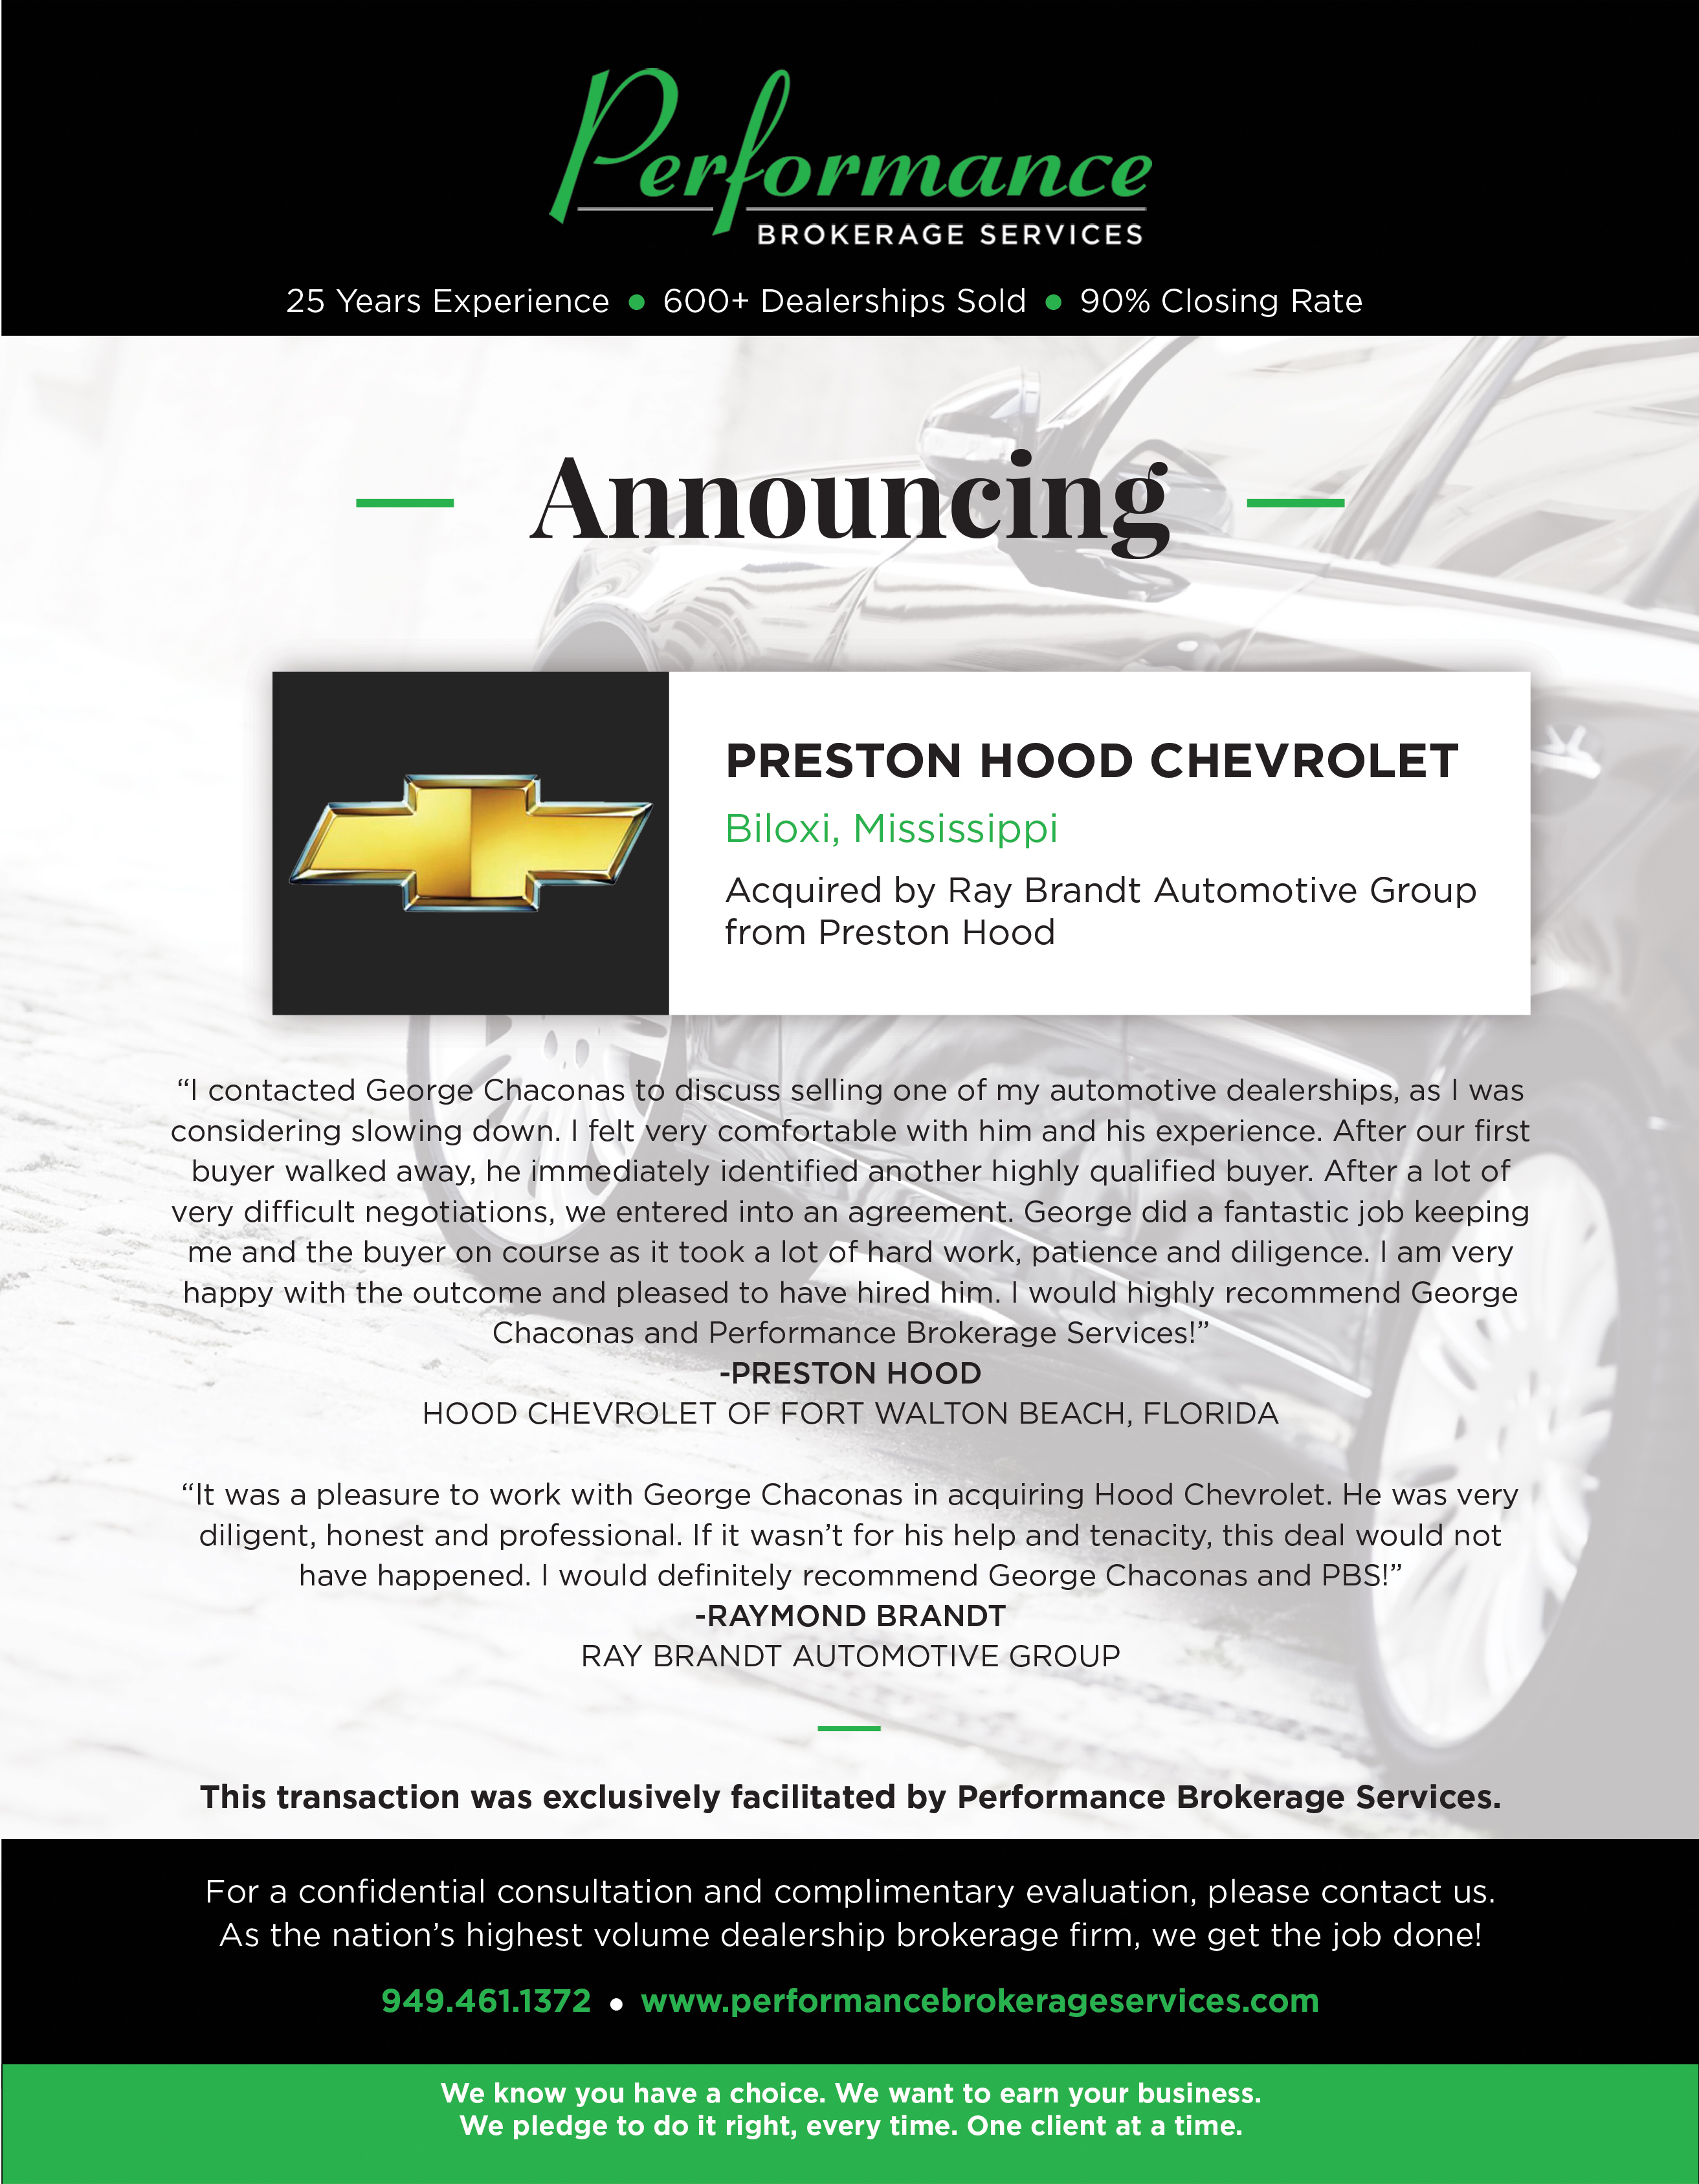 Ray Brandt Automotive Group Acquires Preston Hood Chevrolet